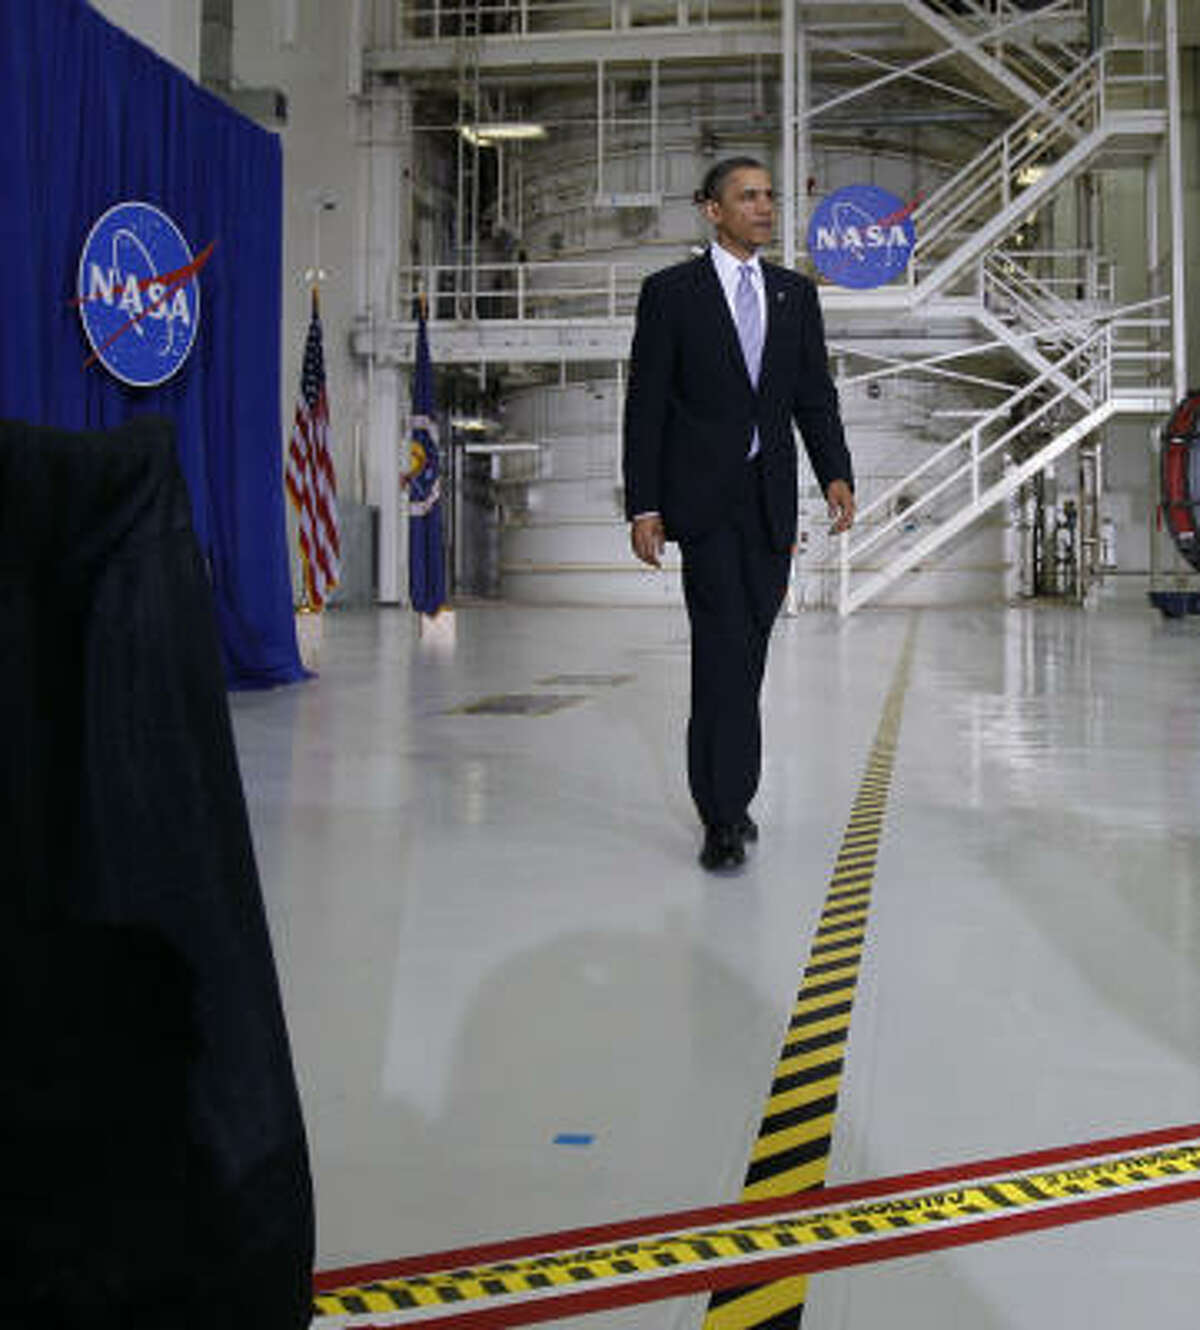 President Obama acknowledged criticism, even from some prominent astronauts, for his drastic changes to the space program's direction.